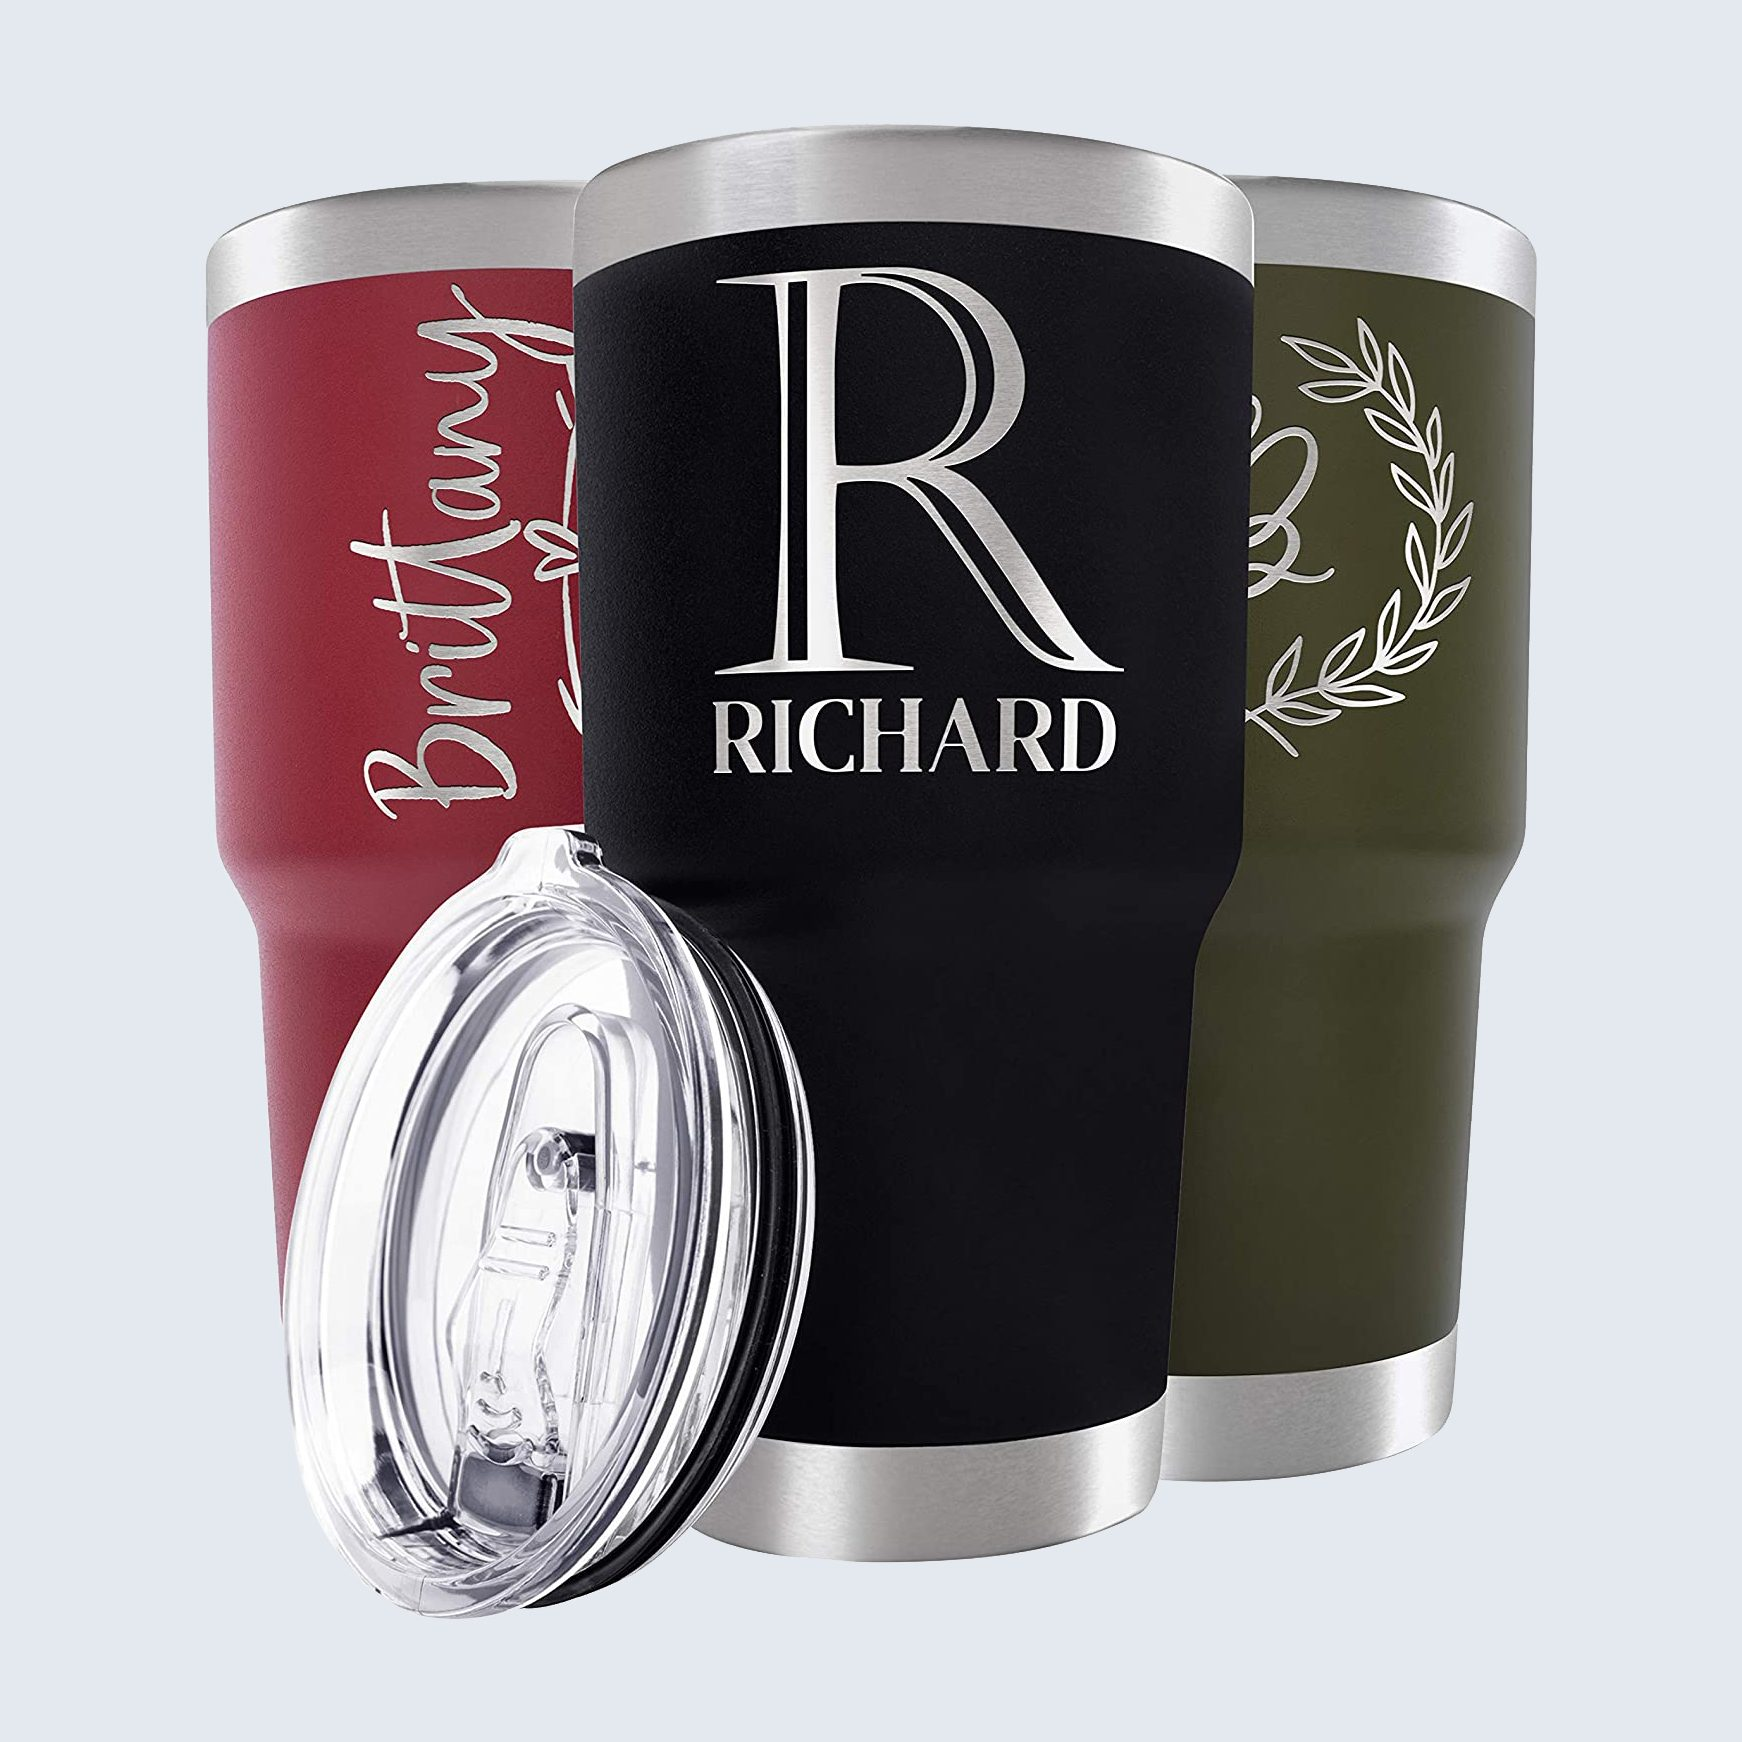 Personalized tumbler for Father's Day